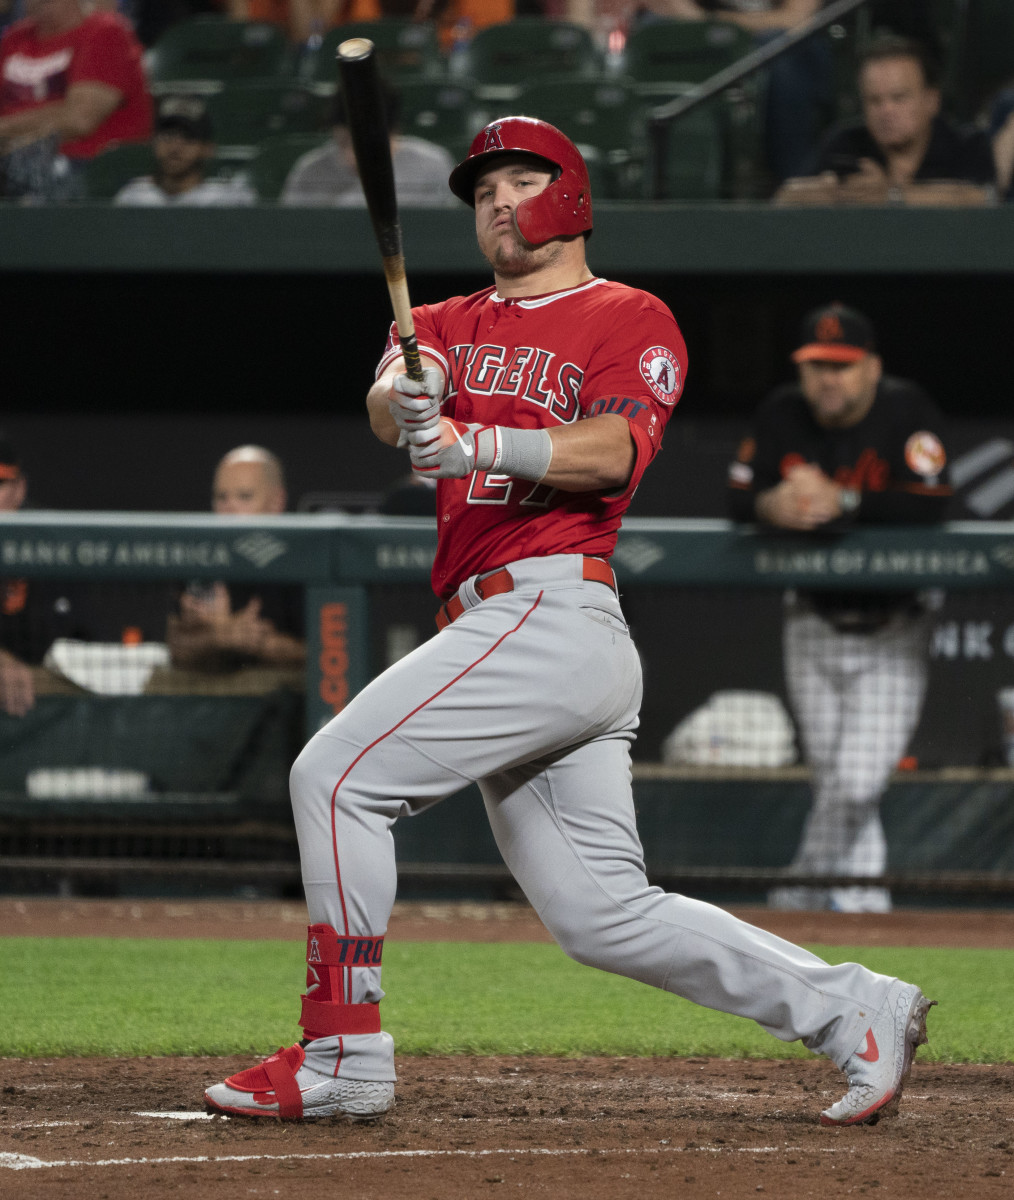 Mike Trout signed a $426.5 million contract to remain with the Angels through 2030.